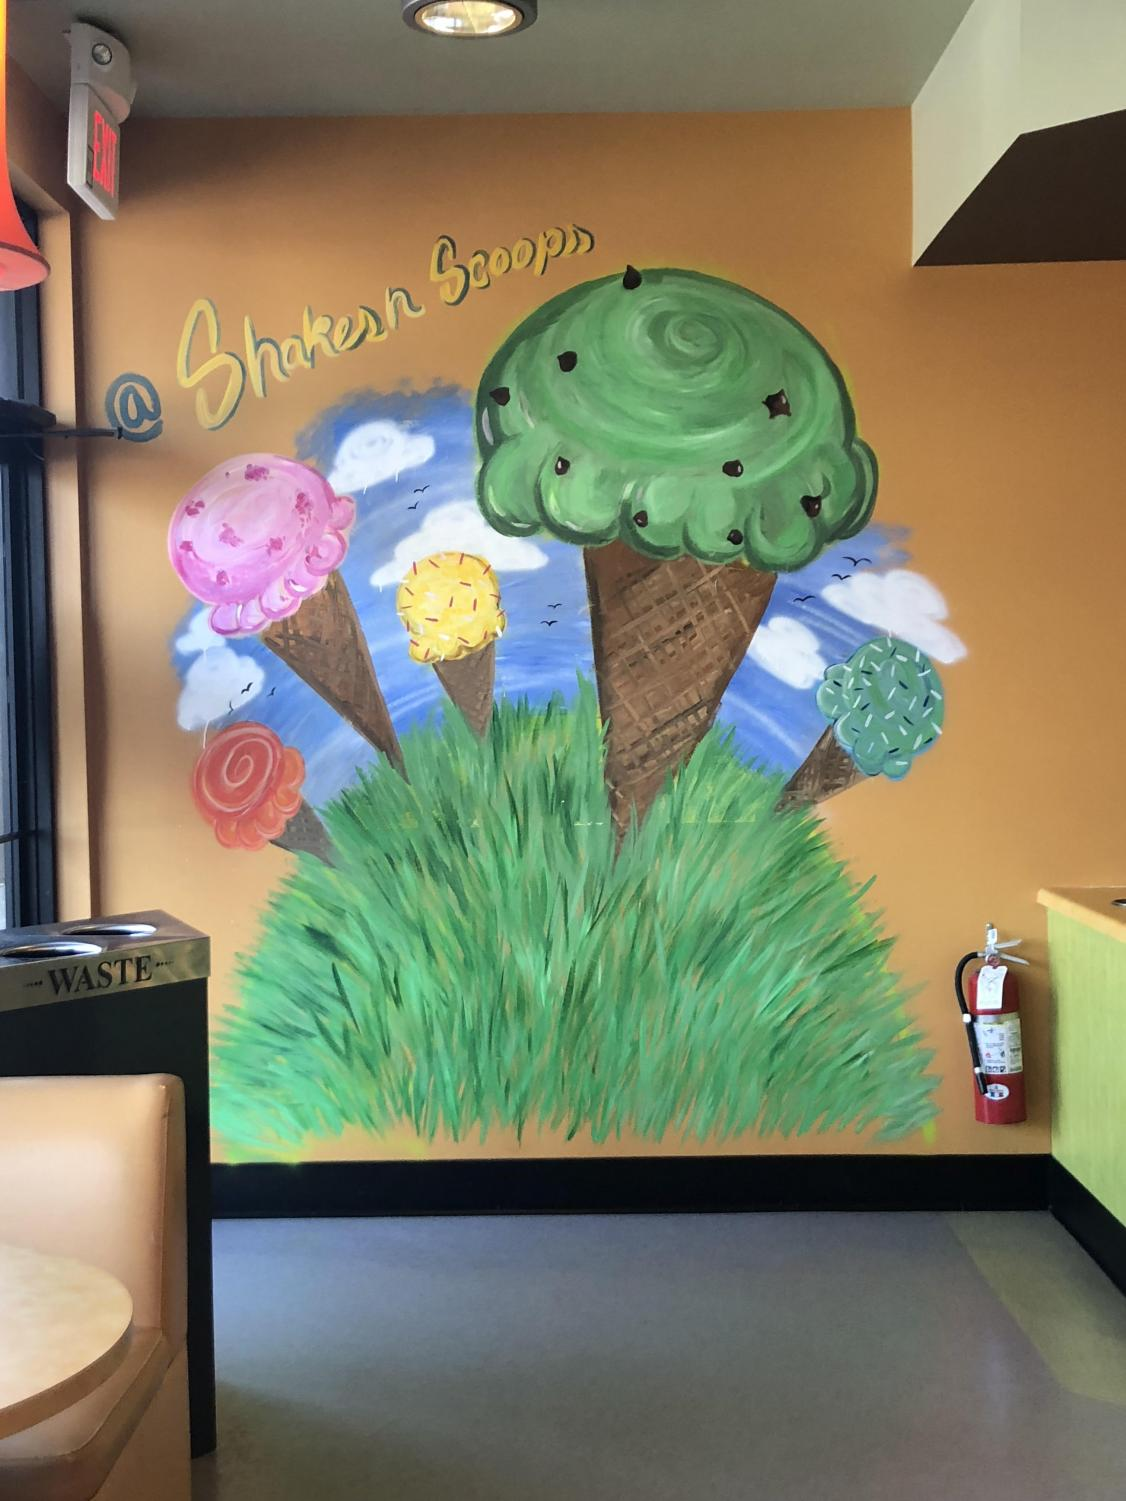 Visit Shakes 'n' Scoops which is located on Route 206 near Culinary Creations.